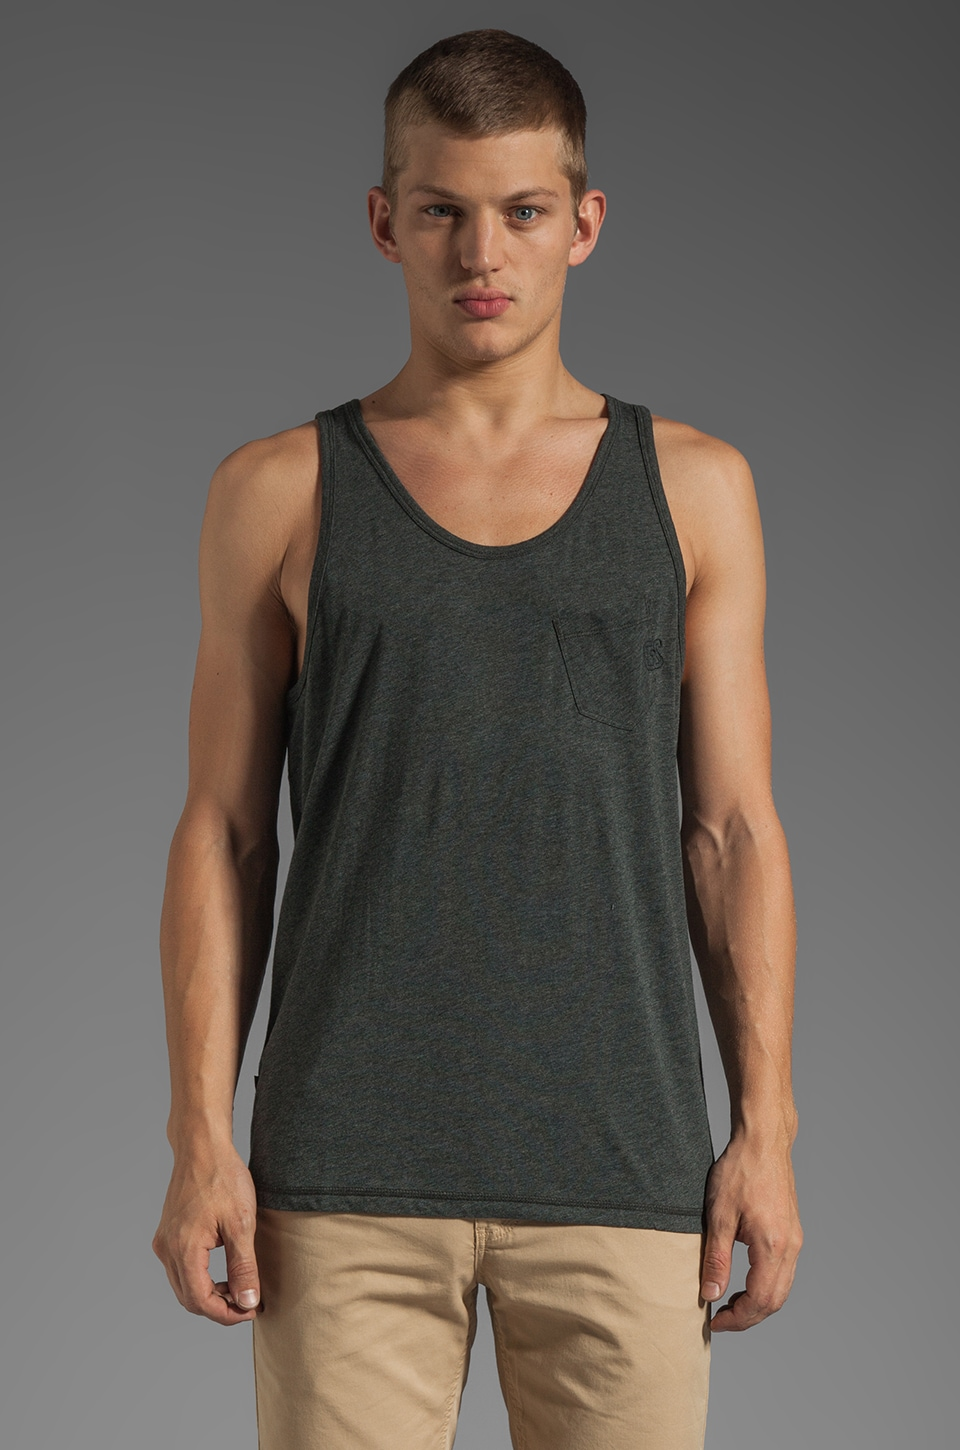 G-Star Ace Loose Tank in Raven